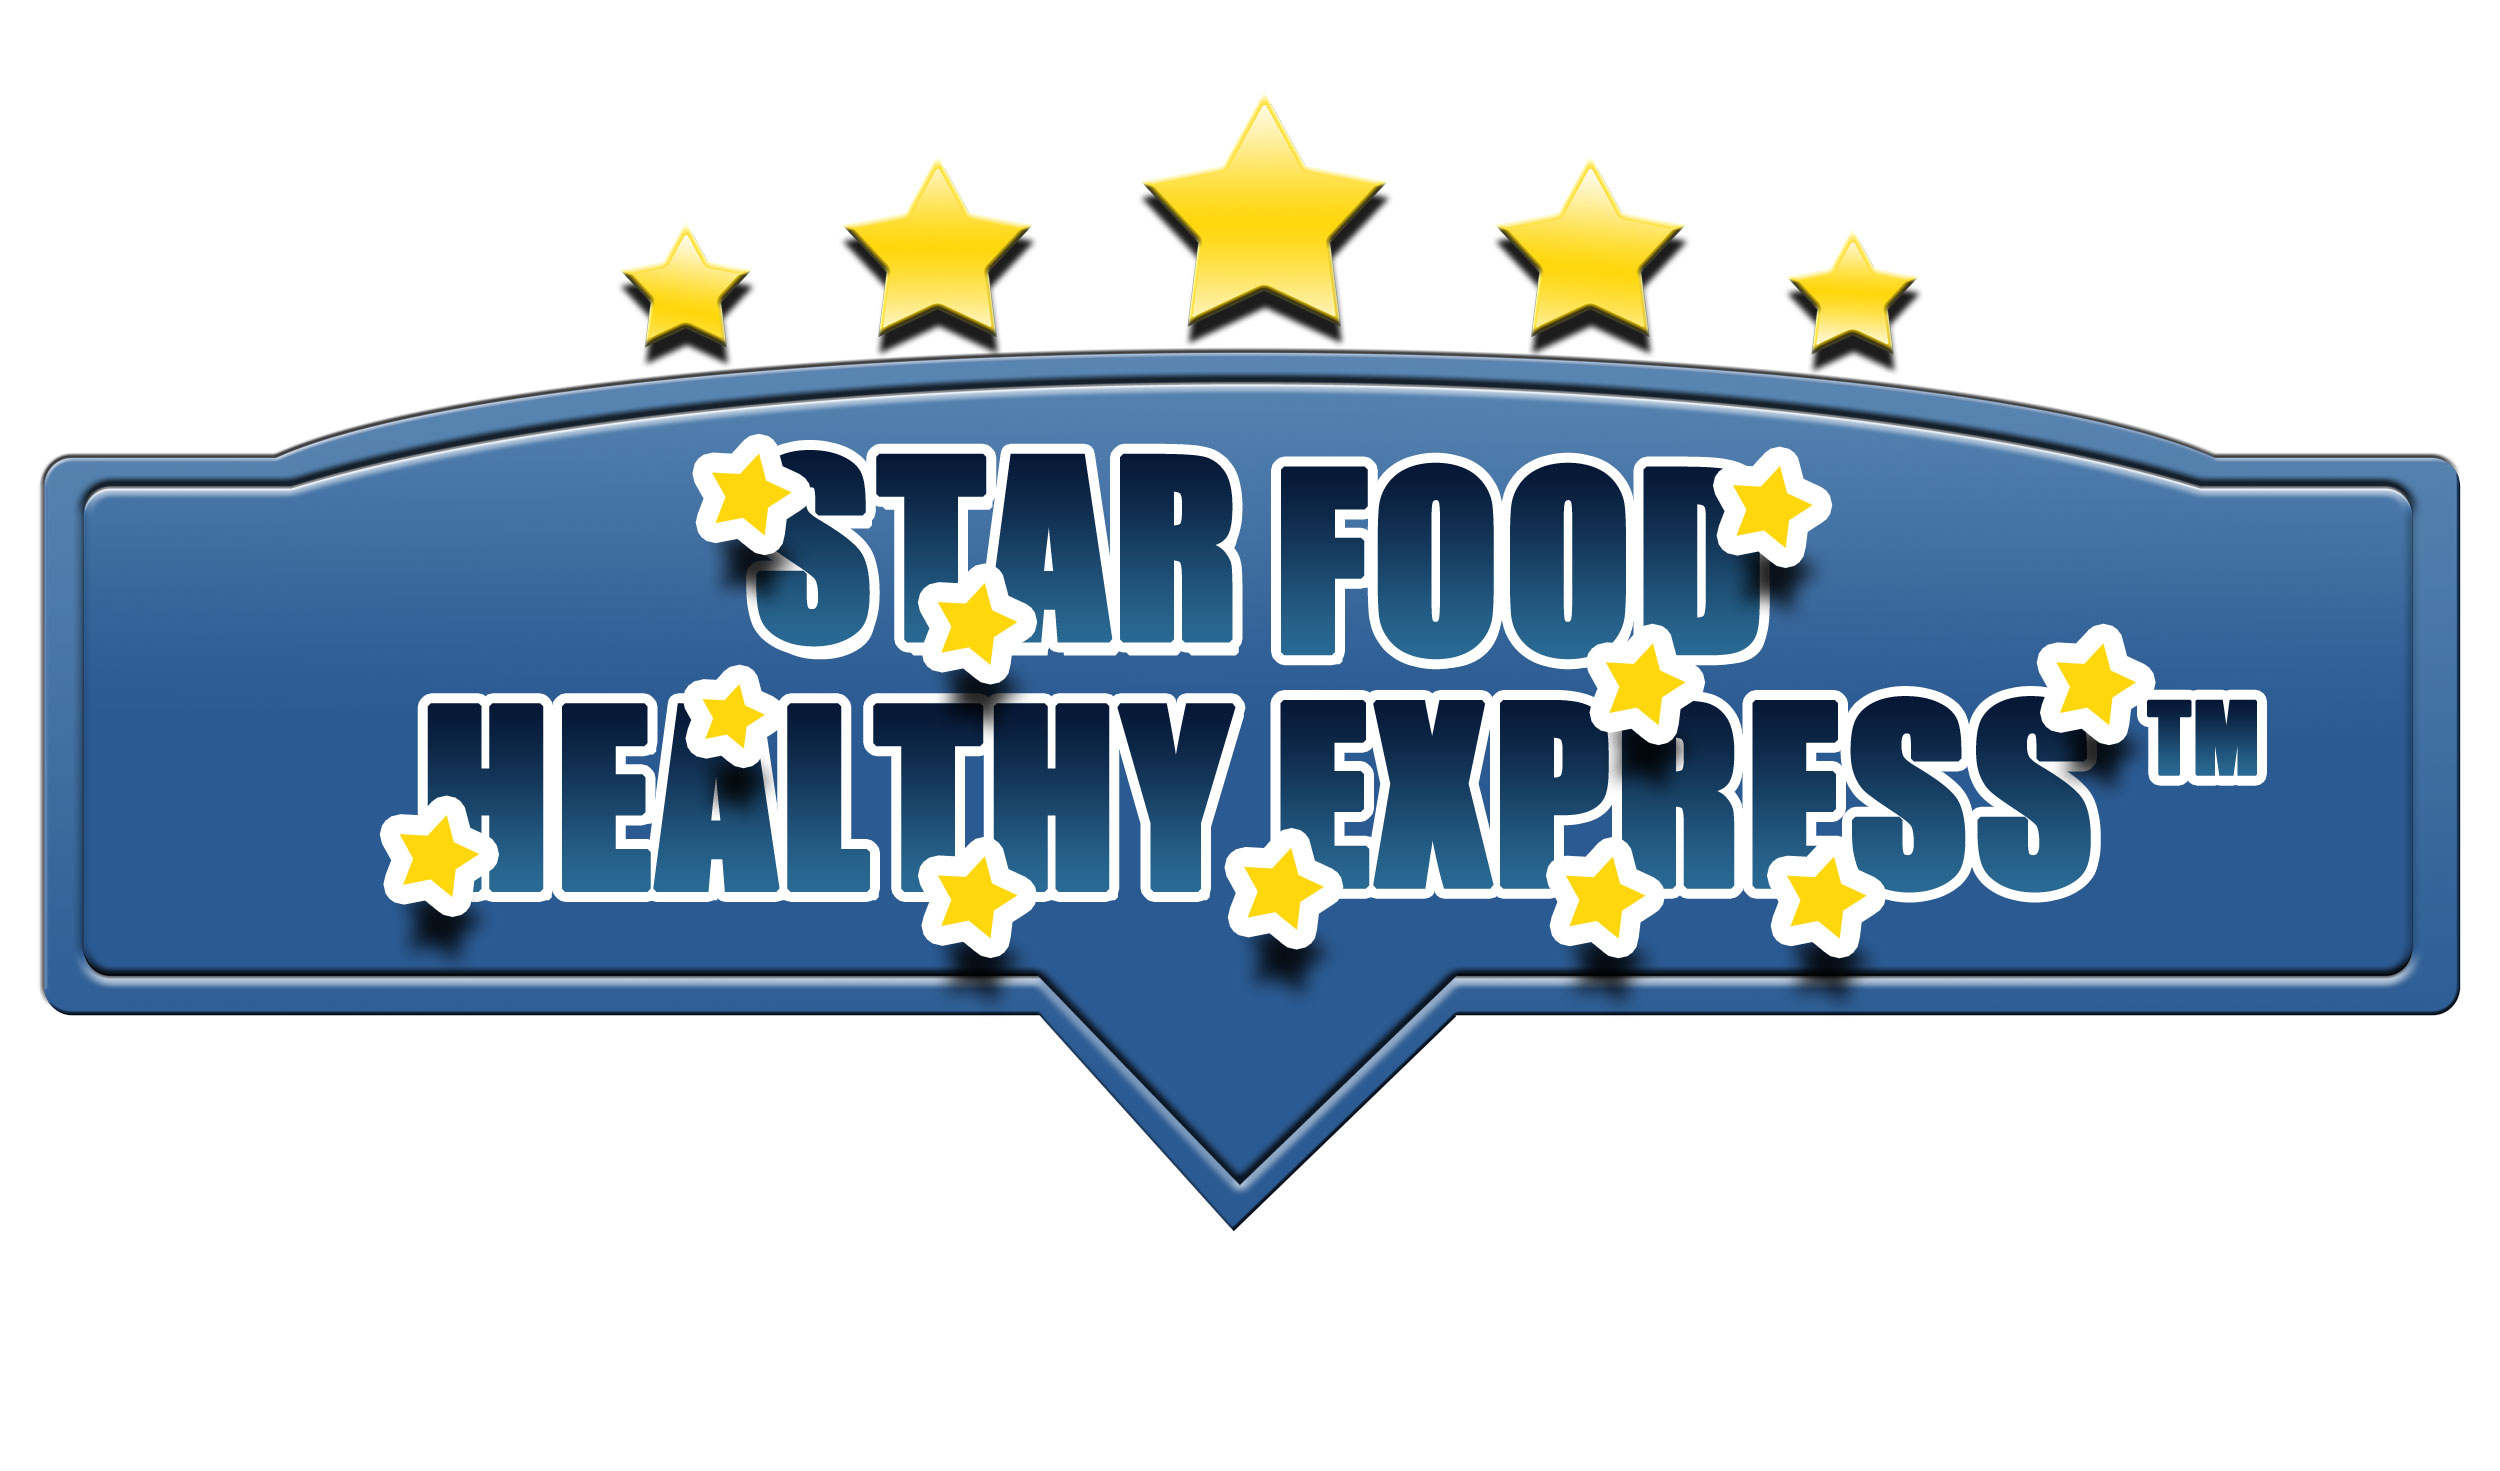 star food healthy express makes 400th Check out some of the new and flavorful fresh express salad kits and recipes.